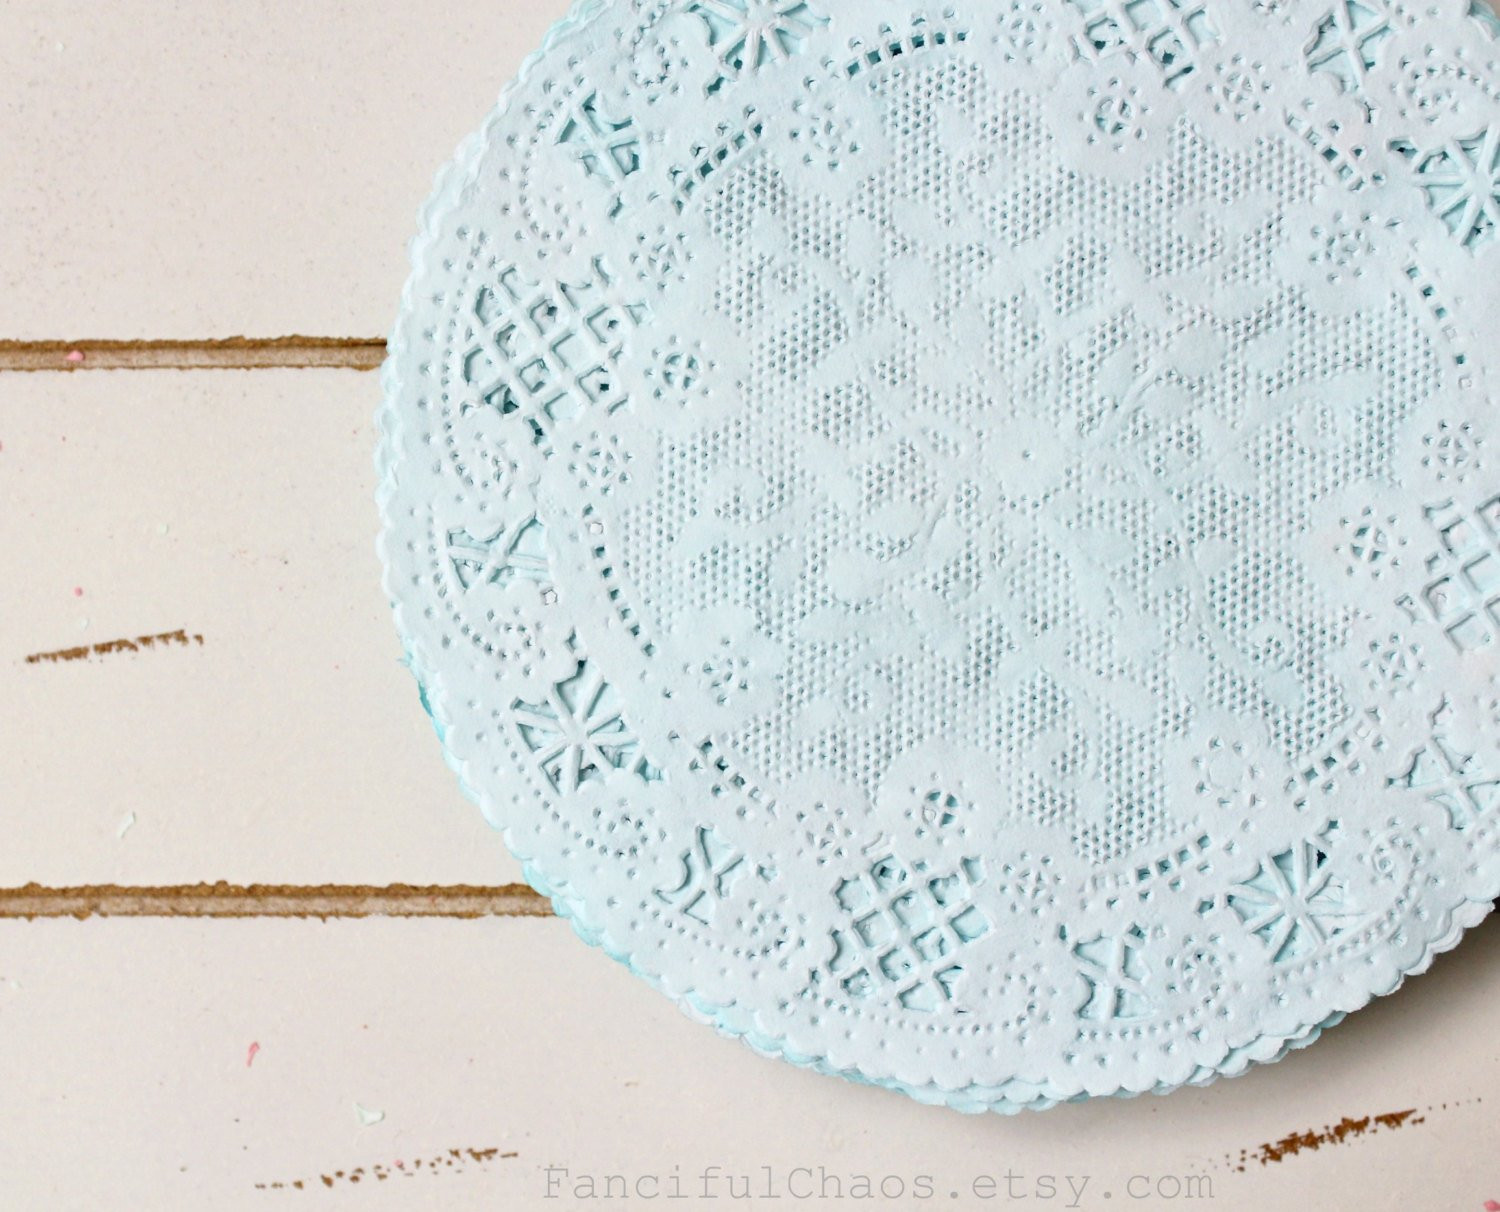 Blue Paper Doilies Fresh 25 Light Blue Paper Doily Doilies 5 Inch Of Innovative 42 Pics Blue Paper Doilies